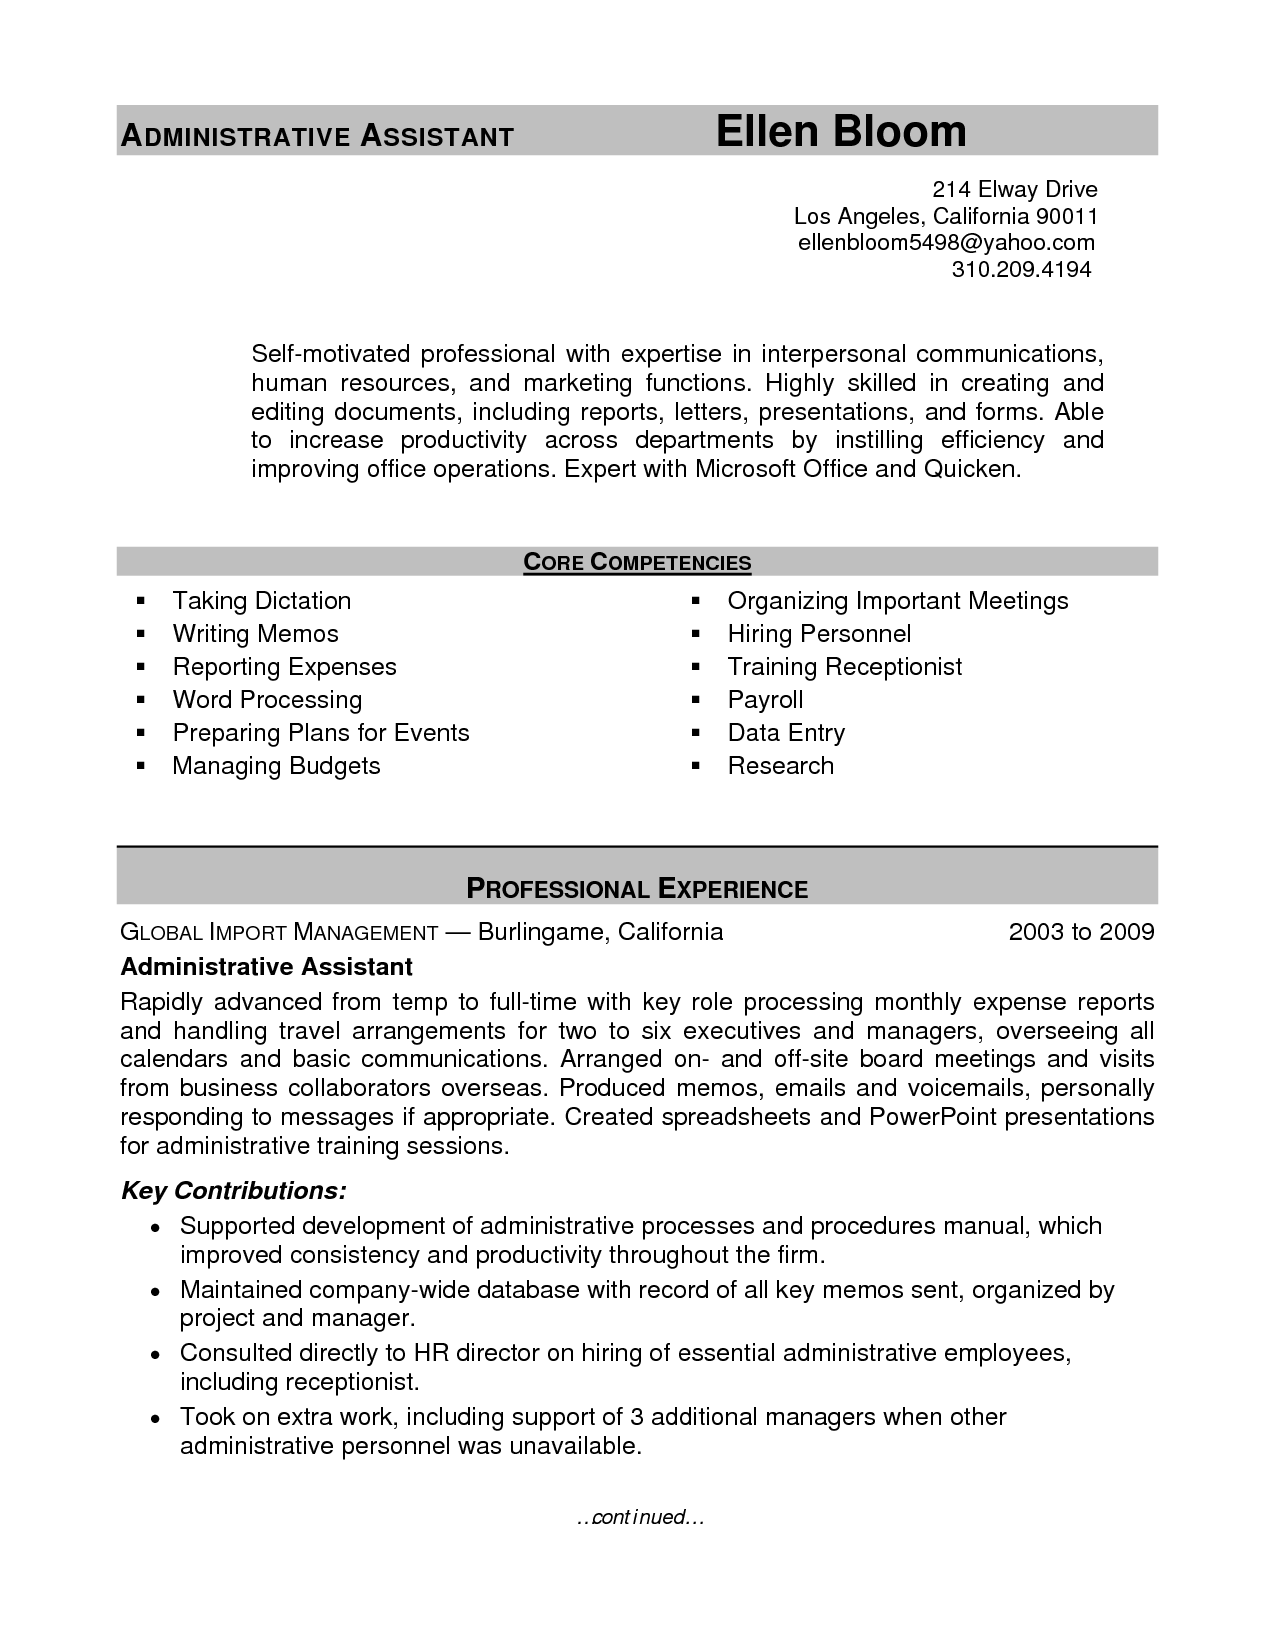 best images about best administration resume templates samples on pinterest professional resume receptionist and accounting - Sample Resume Church Administrative Assistant